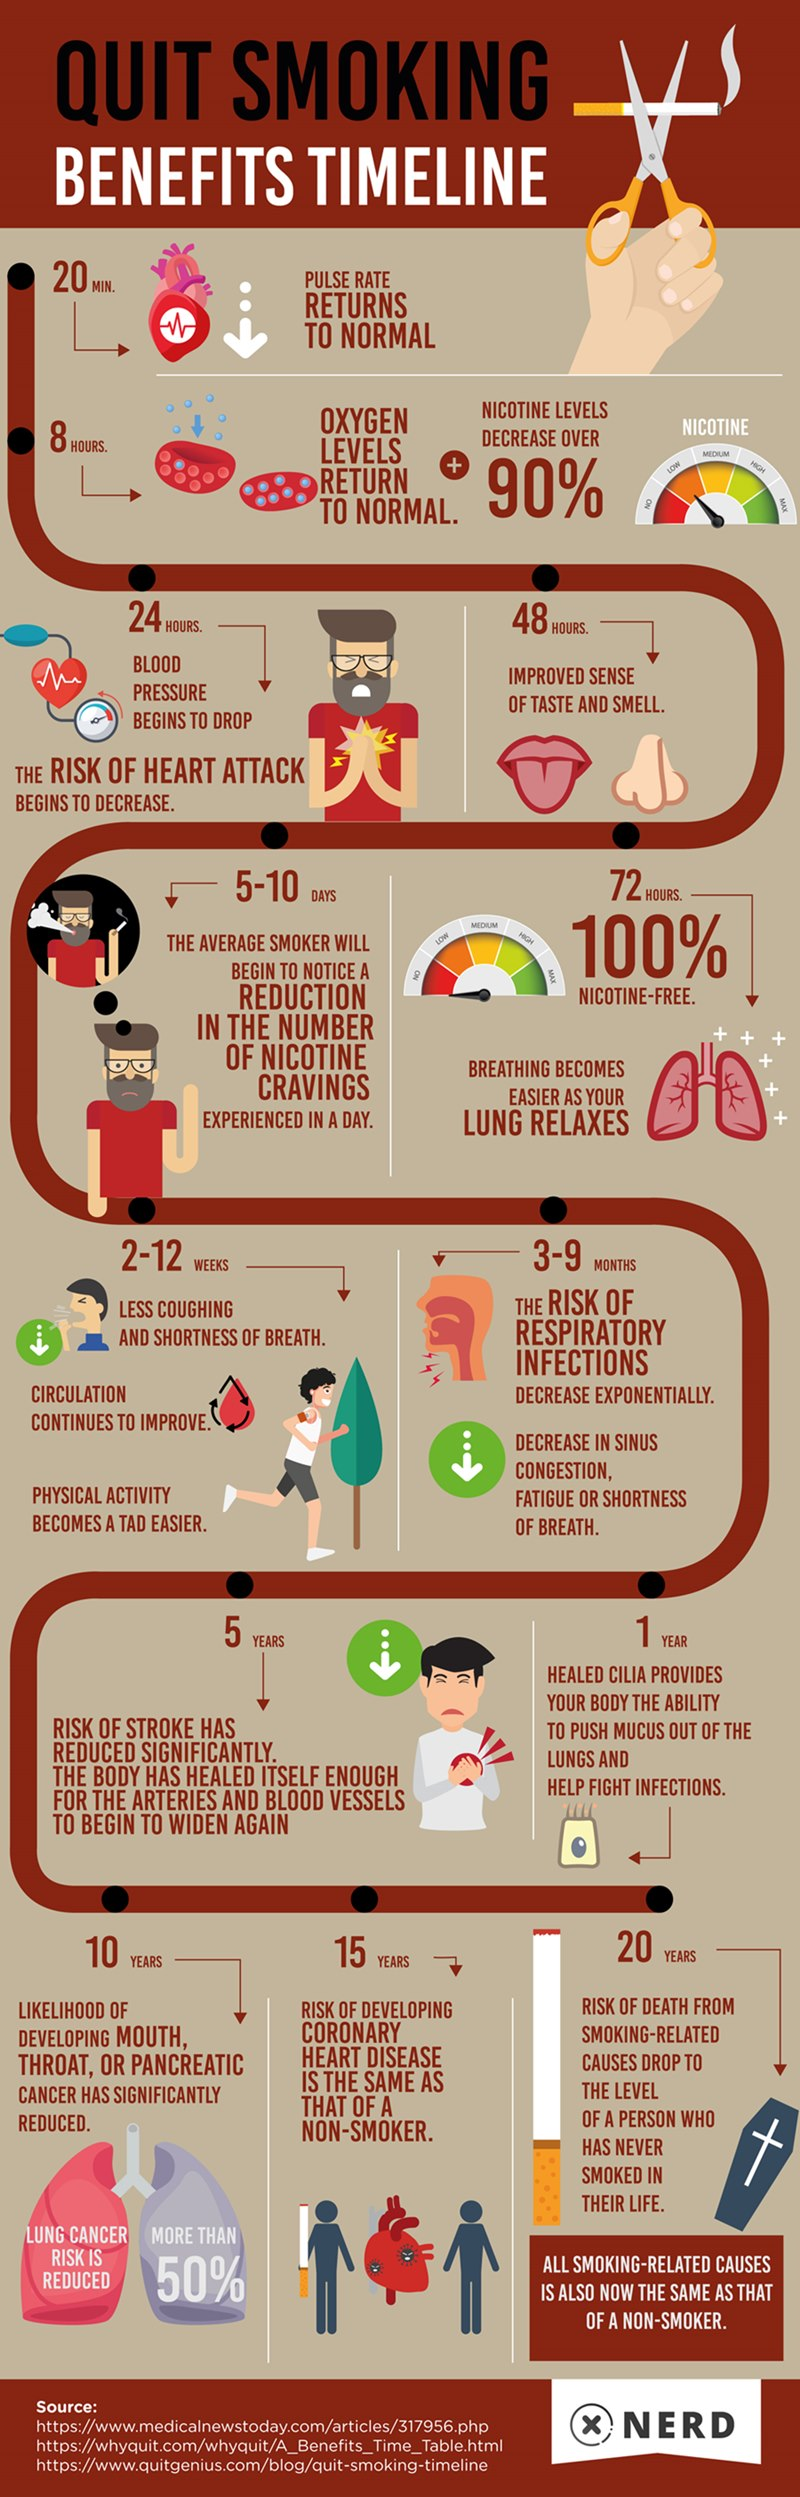 Quit Smoking Timeline Infographic (Quit with Nerd)